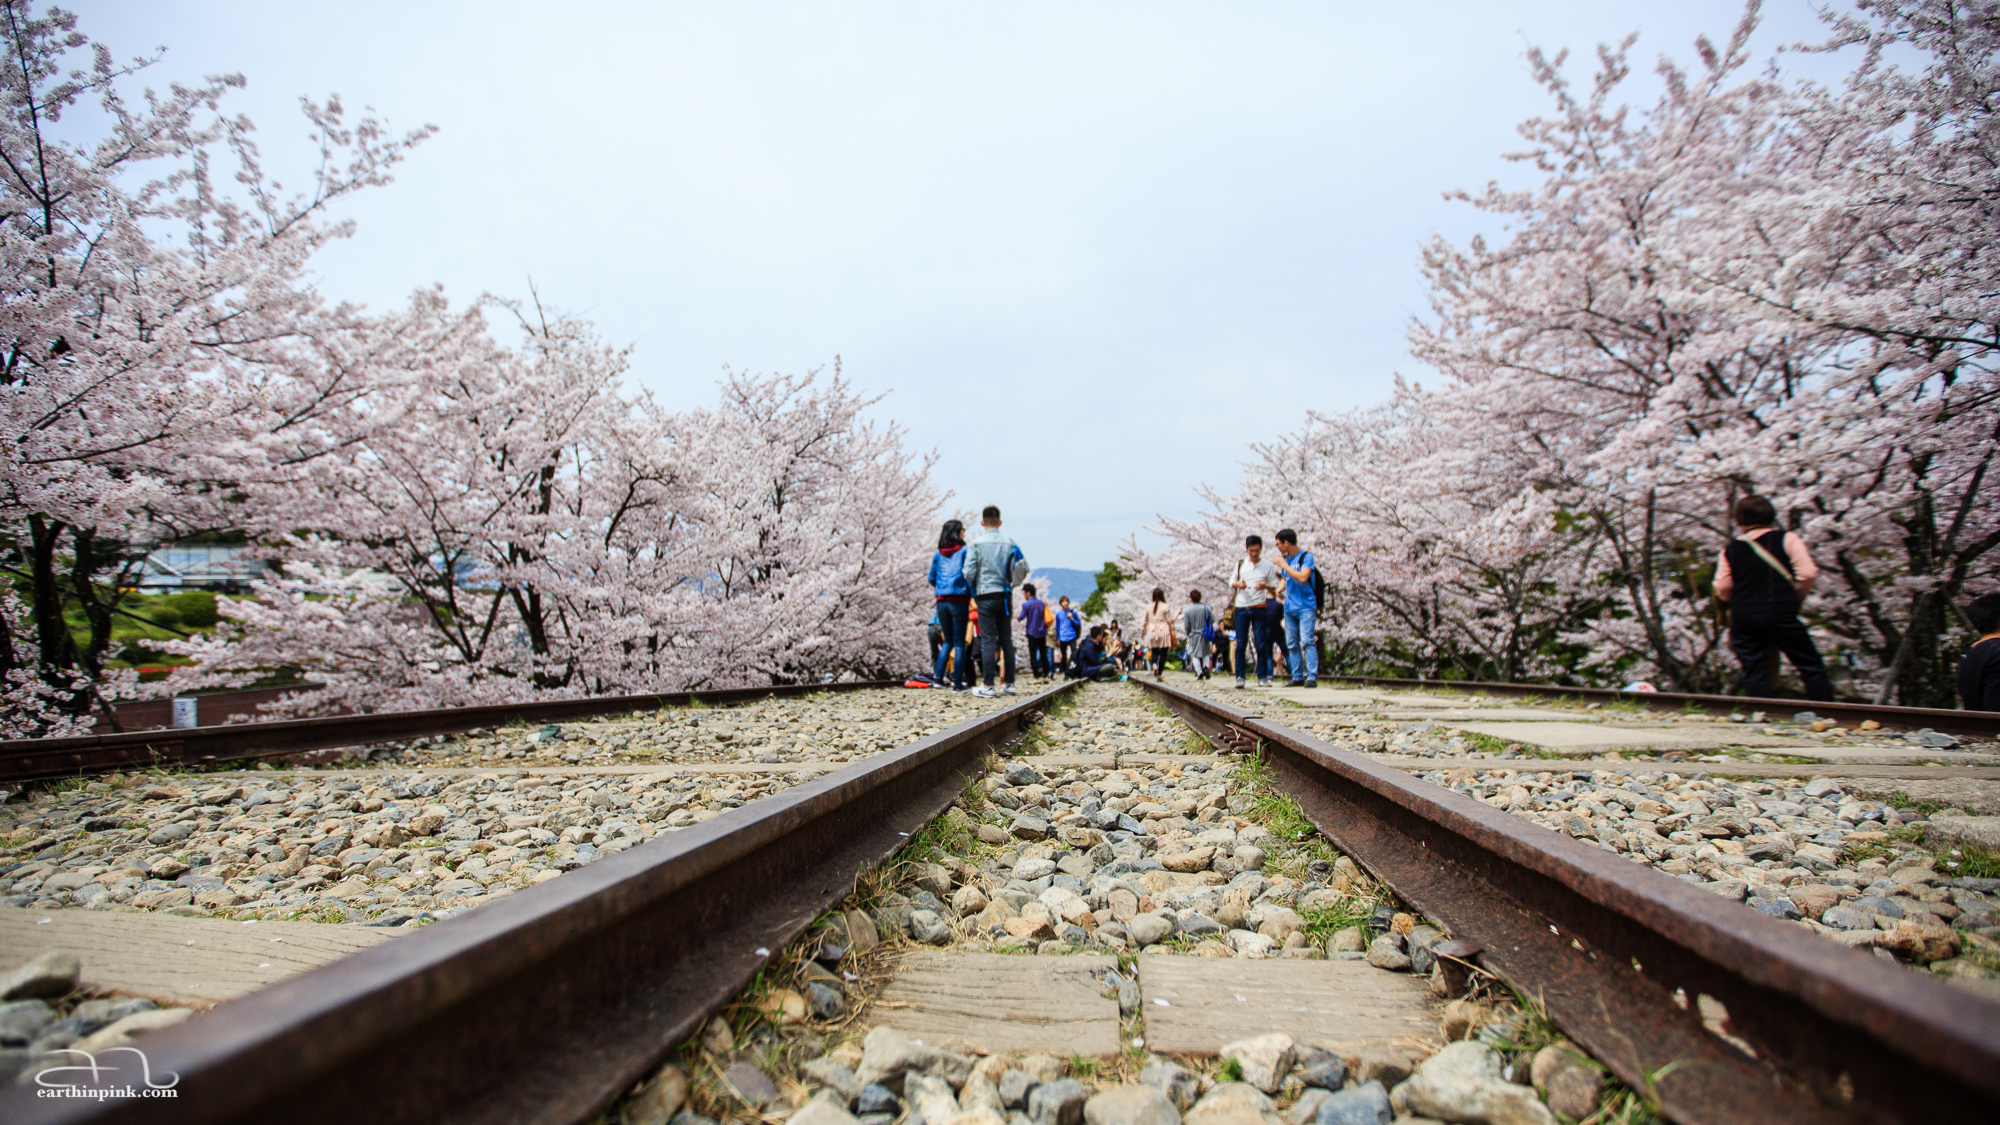 Abandoned railroad tracks at Keage Incline, flanked on both sides by cherry trees.